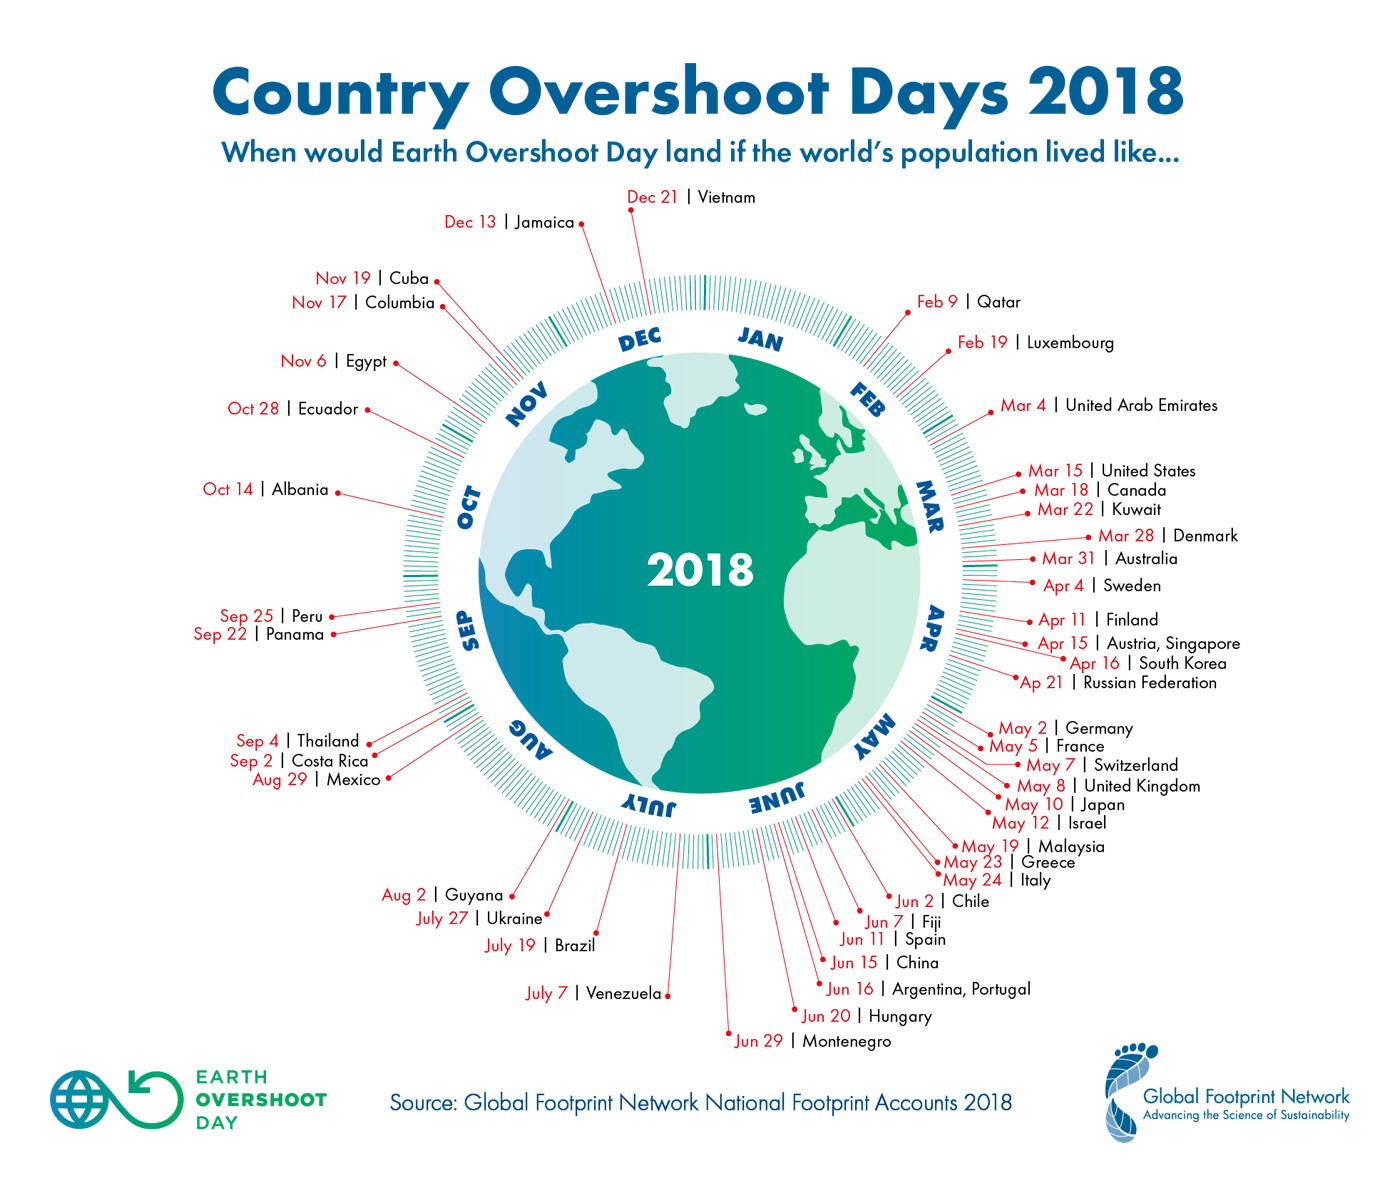 2018-Country-Overshoot-Days-large